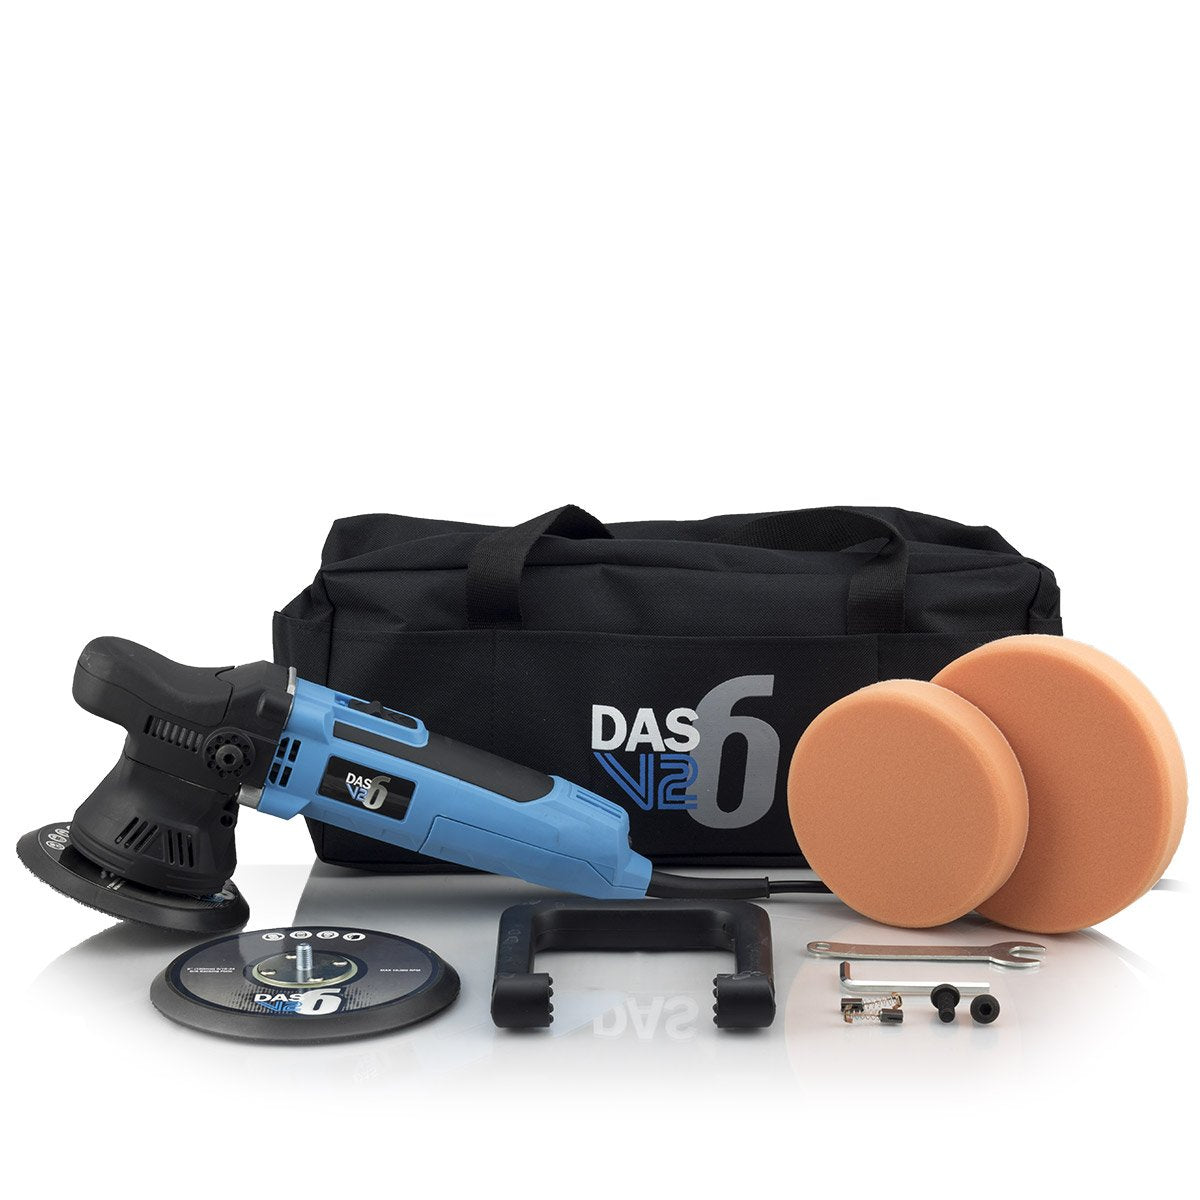 DAS 6 v2 Dual Action Polisher